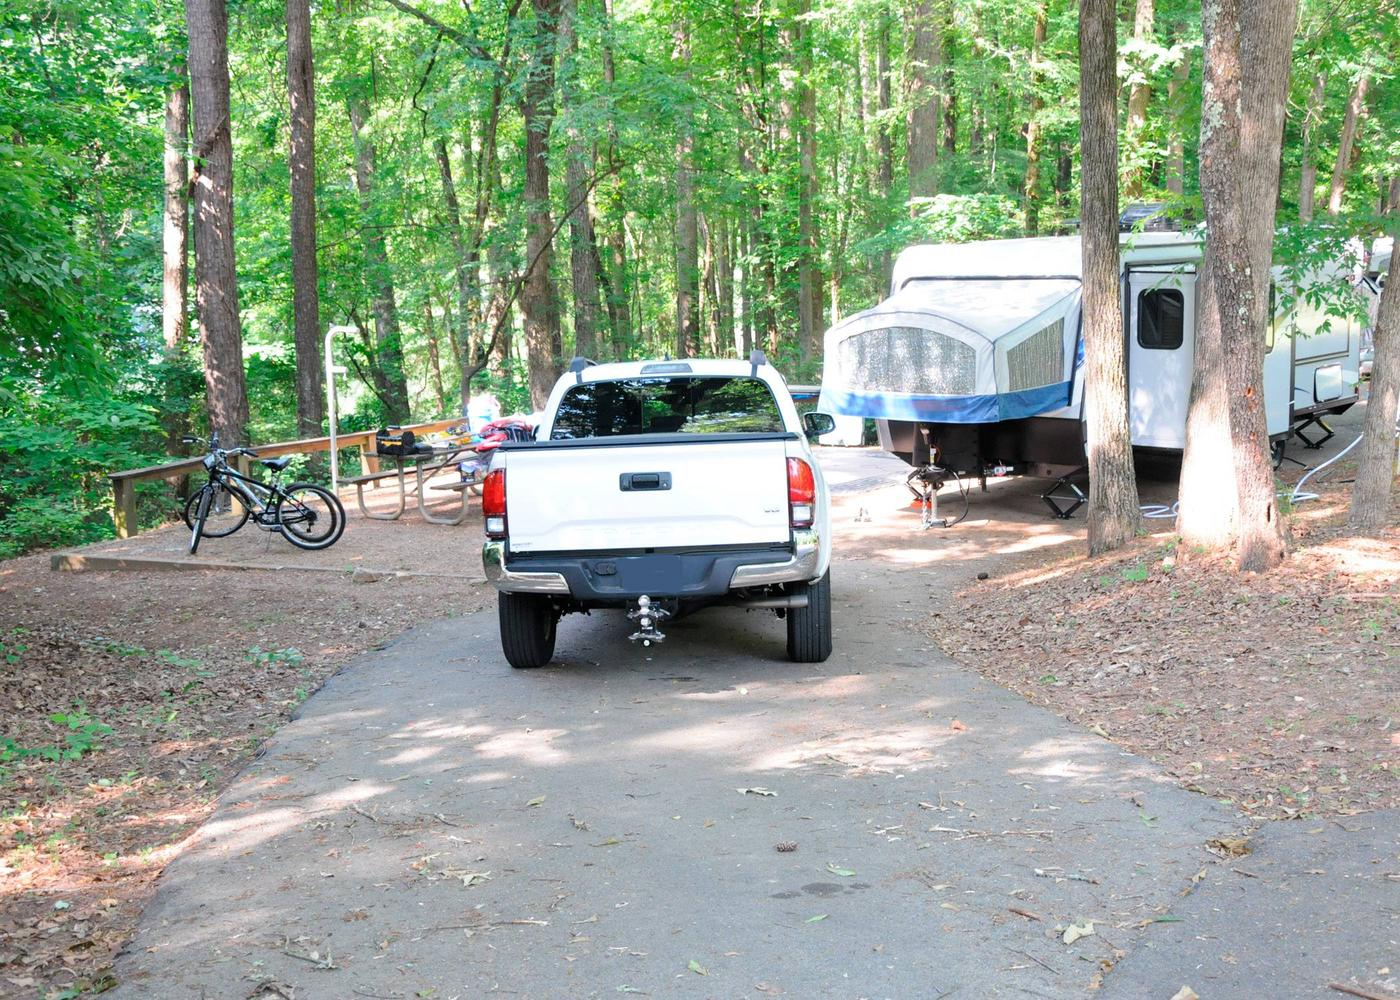 Pull-thru exit, driveway slope, awning-side clearance.Victoria Campground, campsite 57.